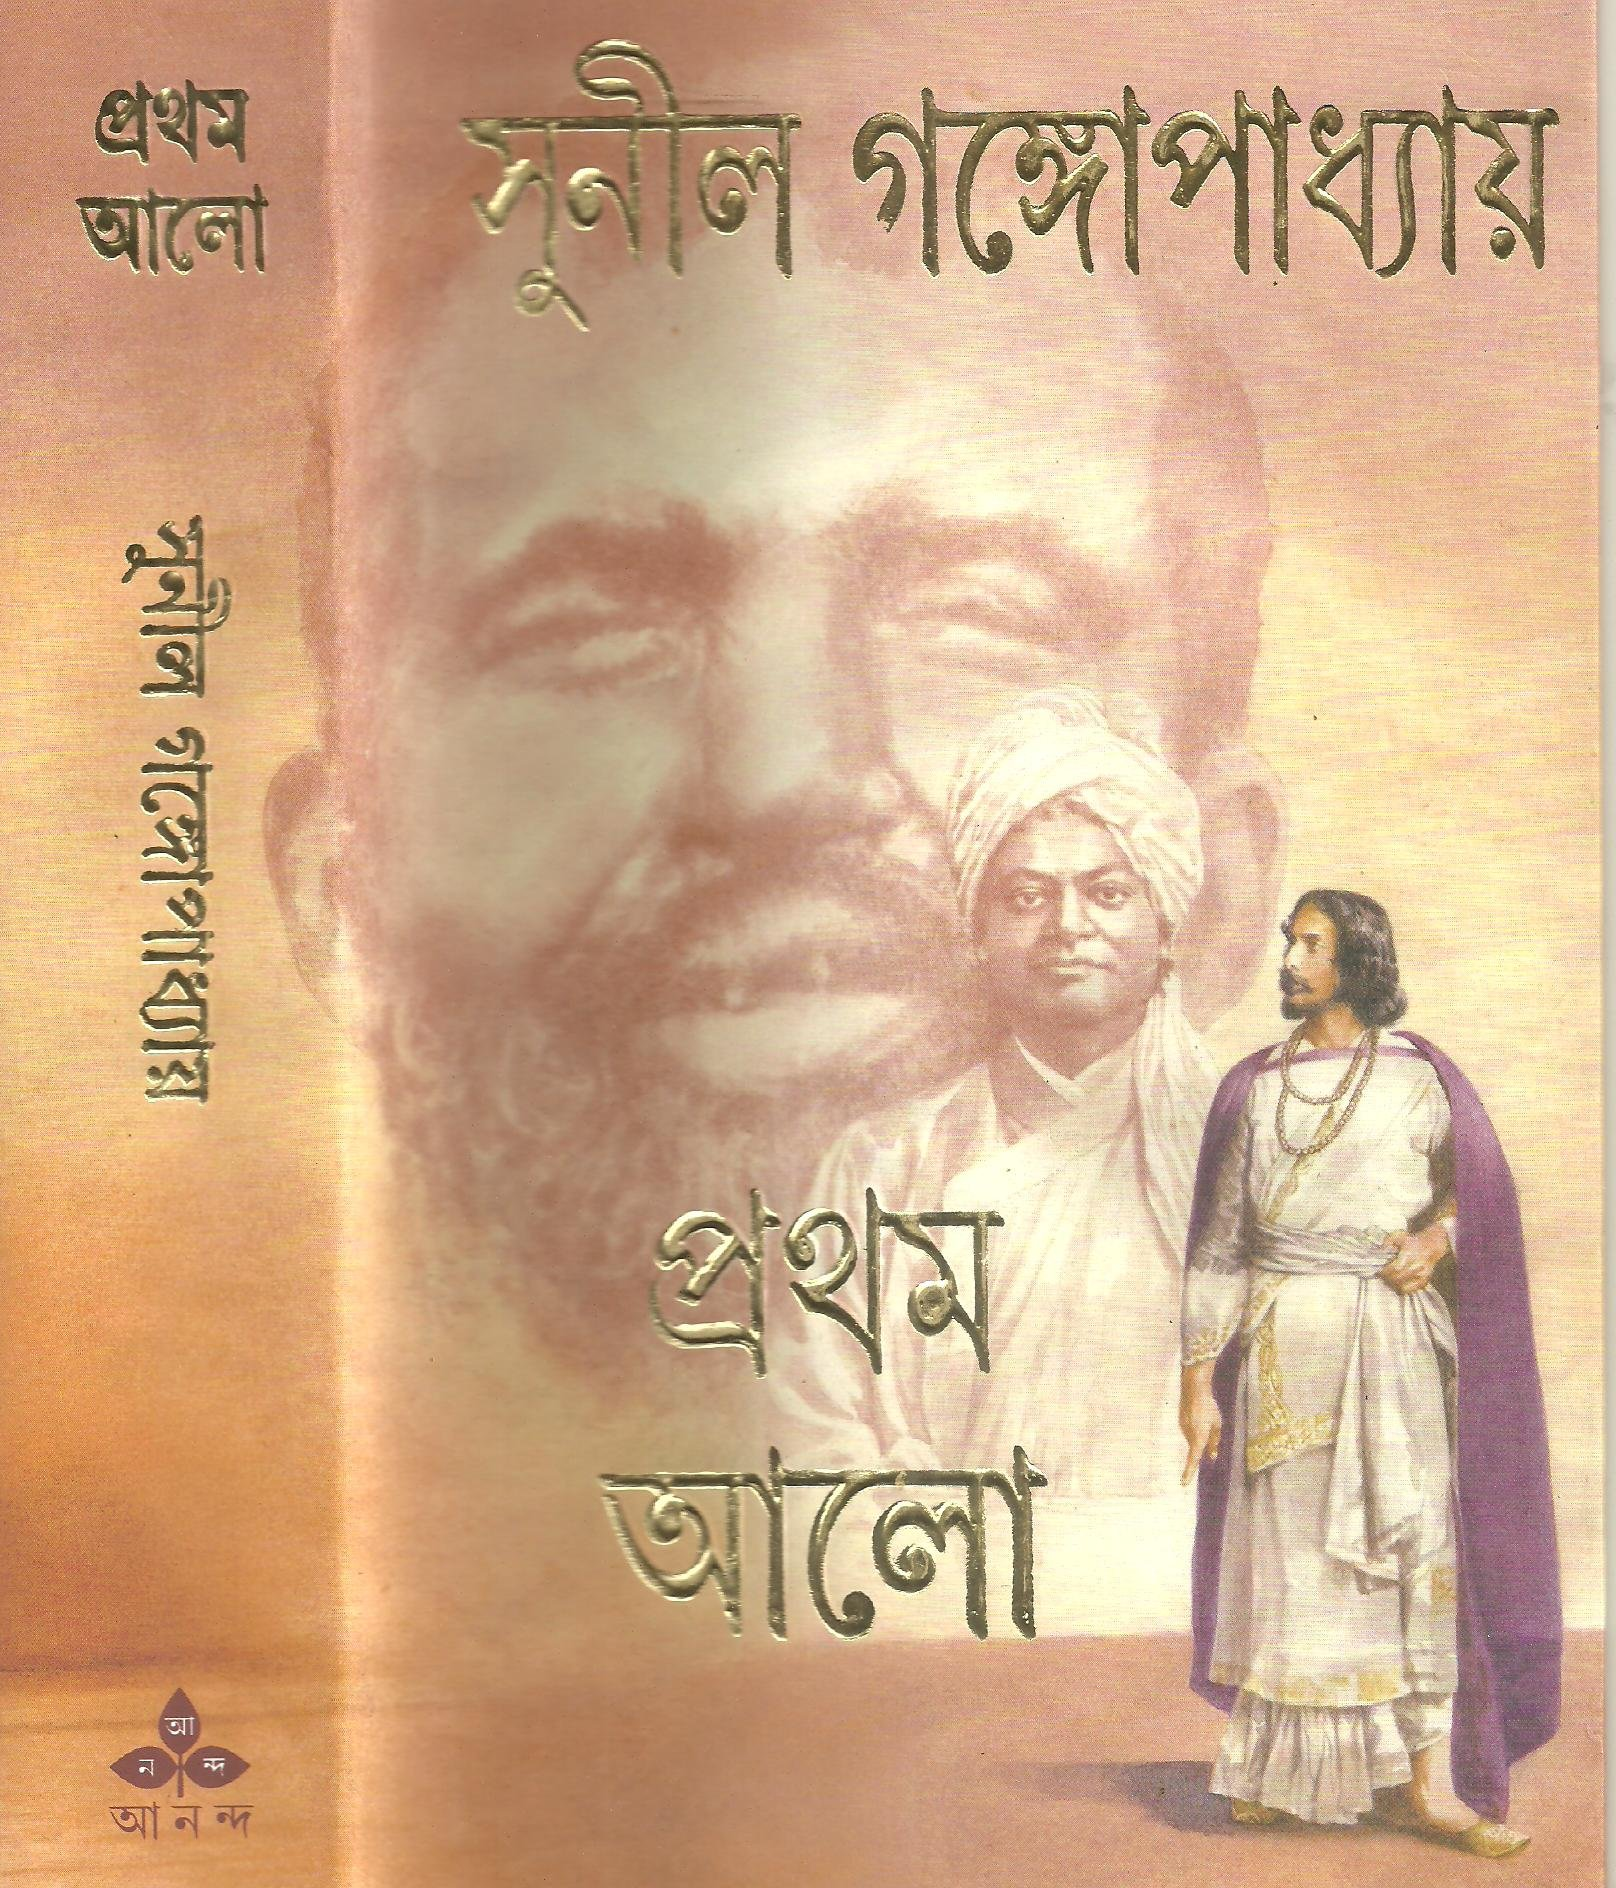 Buy Prothom Alo Book Online at Low Prices in India | Prothom